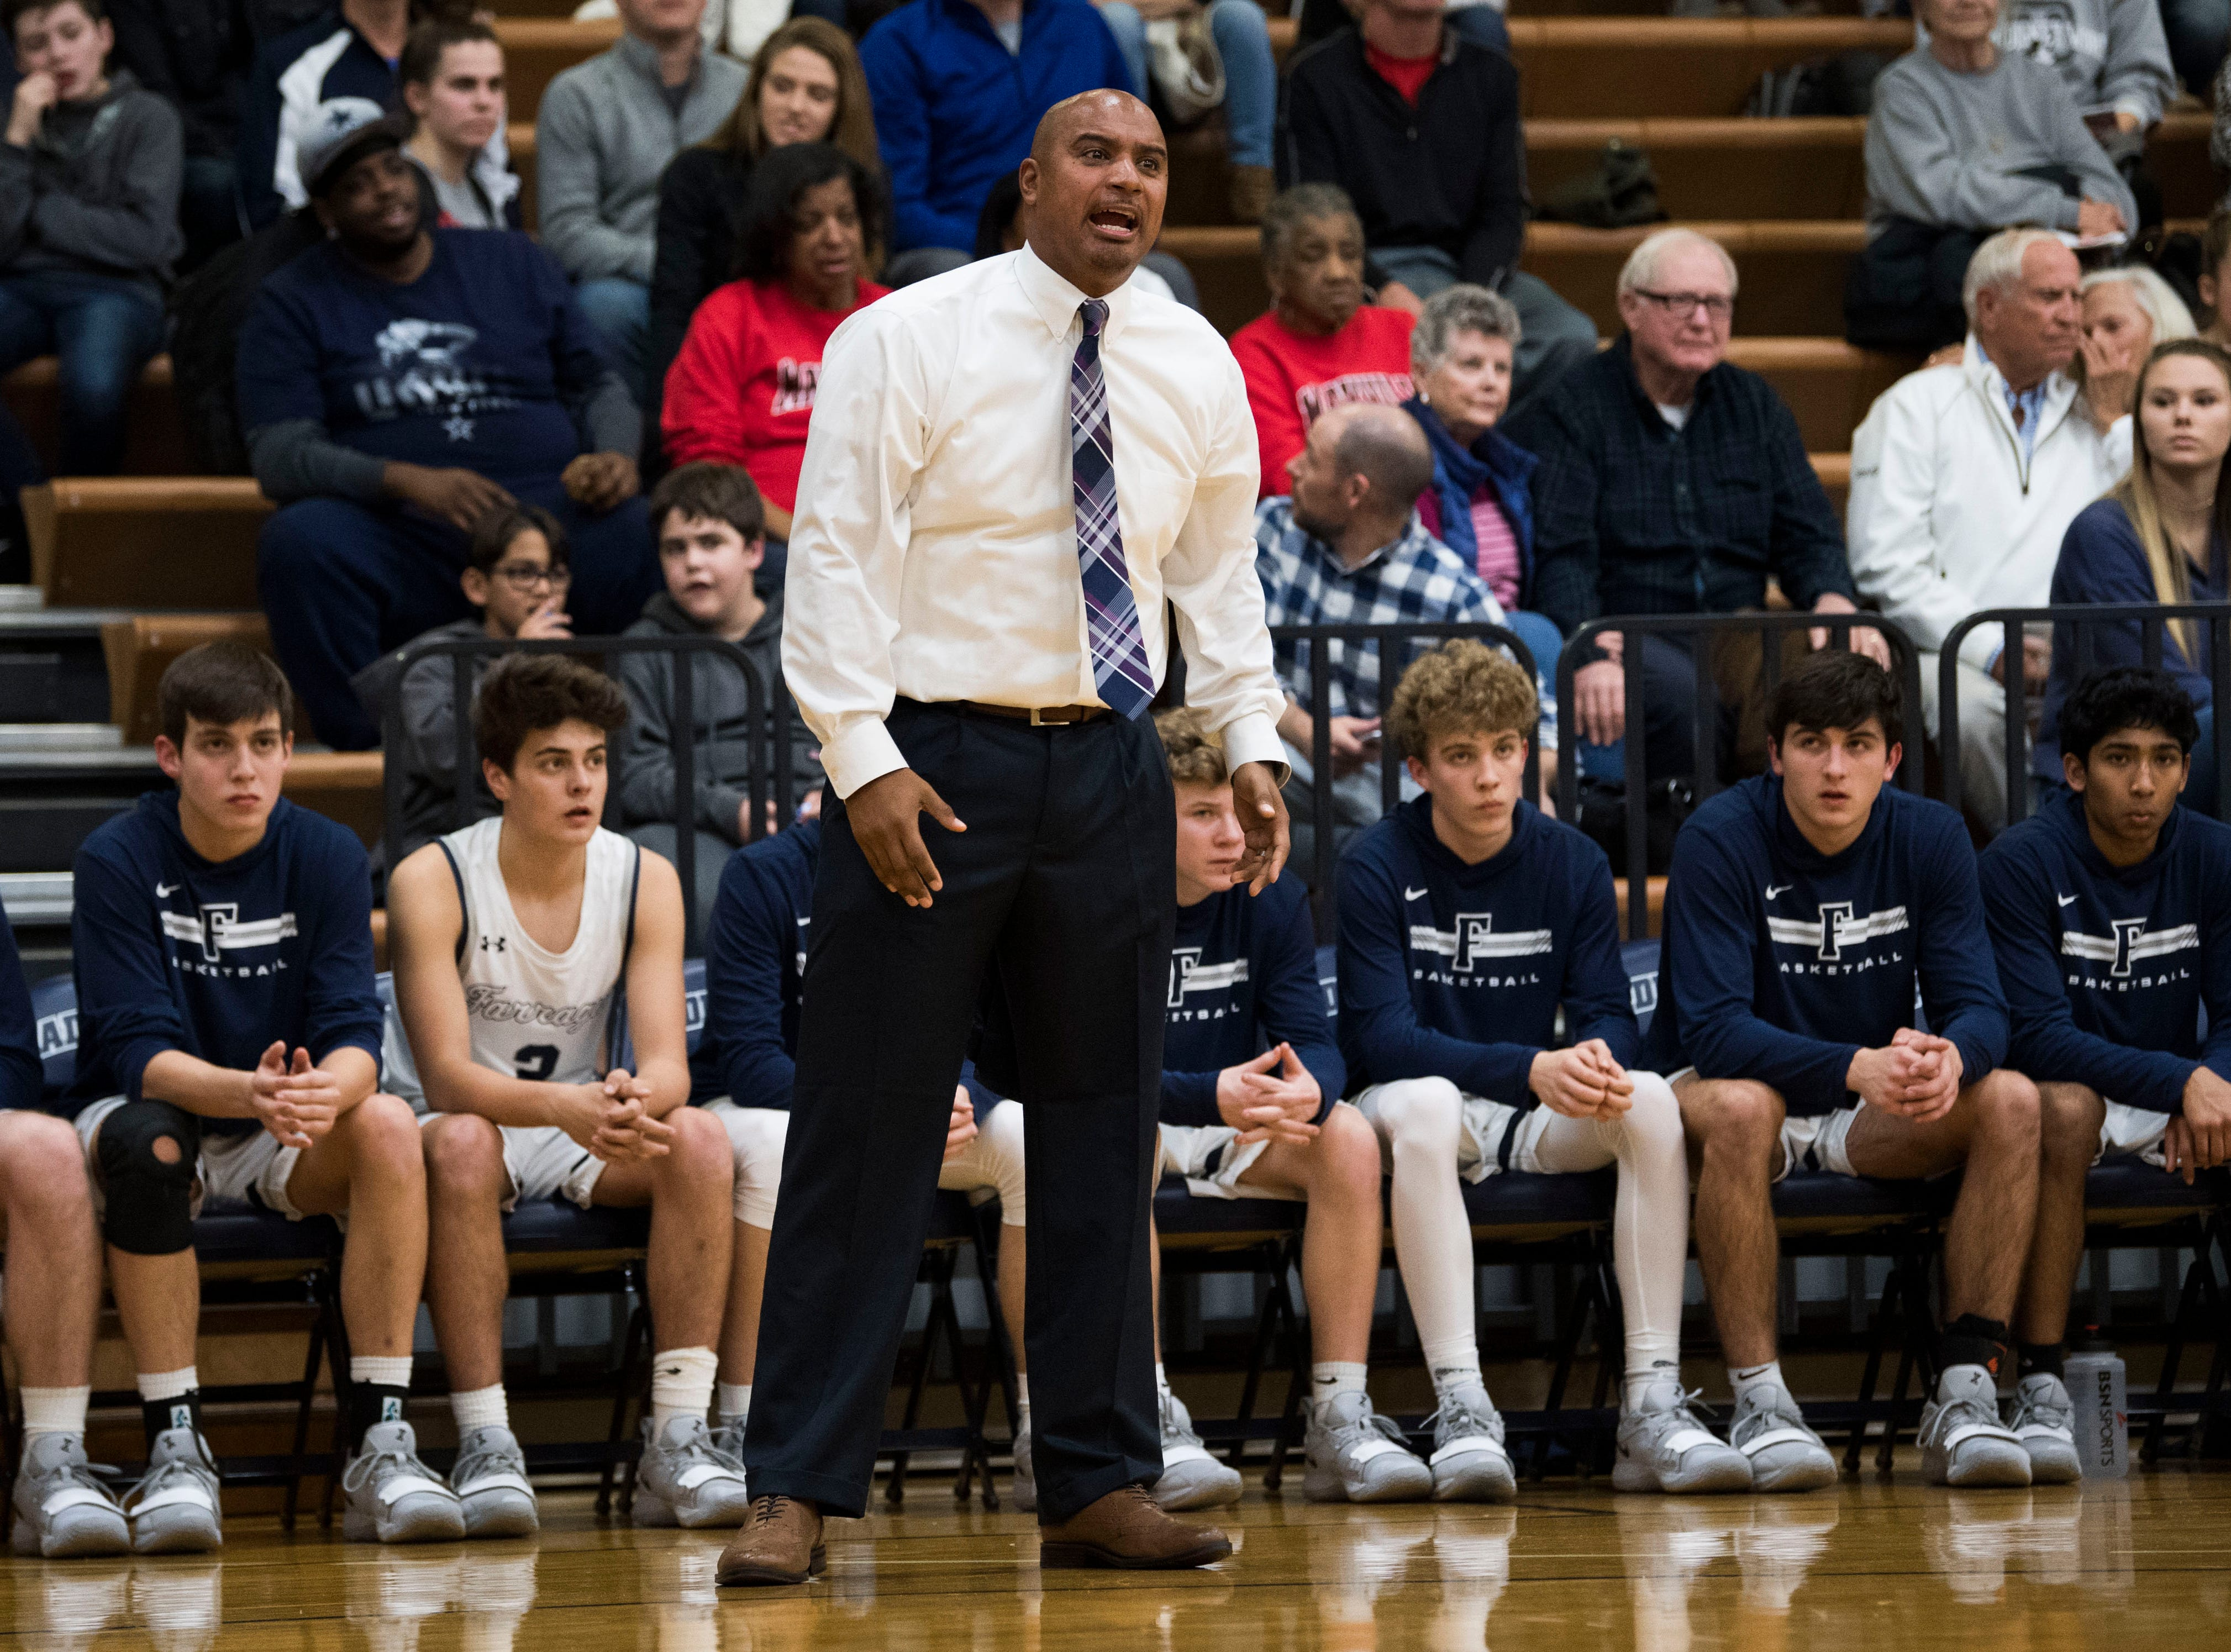 Farragut head coach Jon Higgins yells from the bench during a high school basketball game between Maryville and Farragut at Farragut, Friday, Jan. 11, 2019.